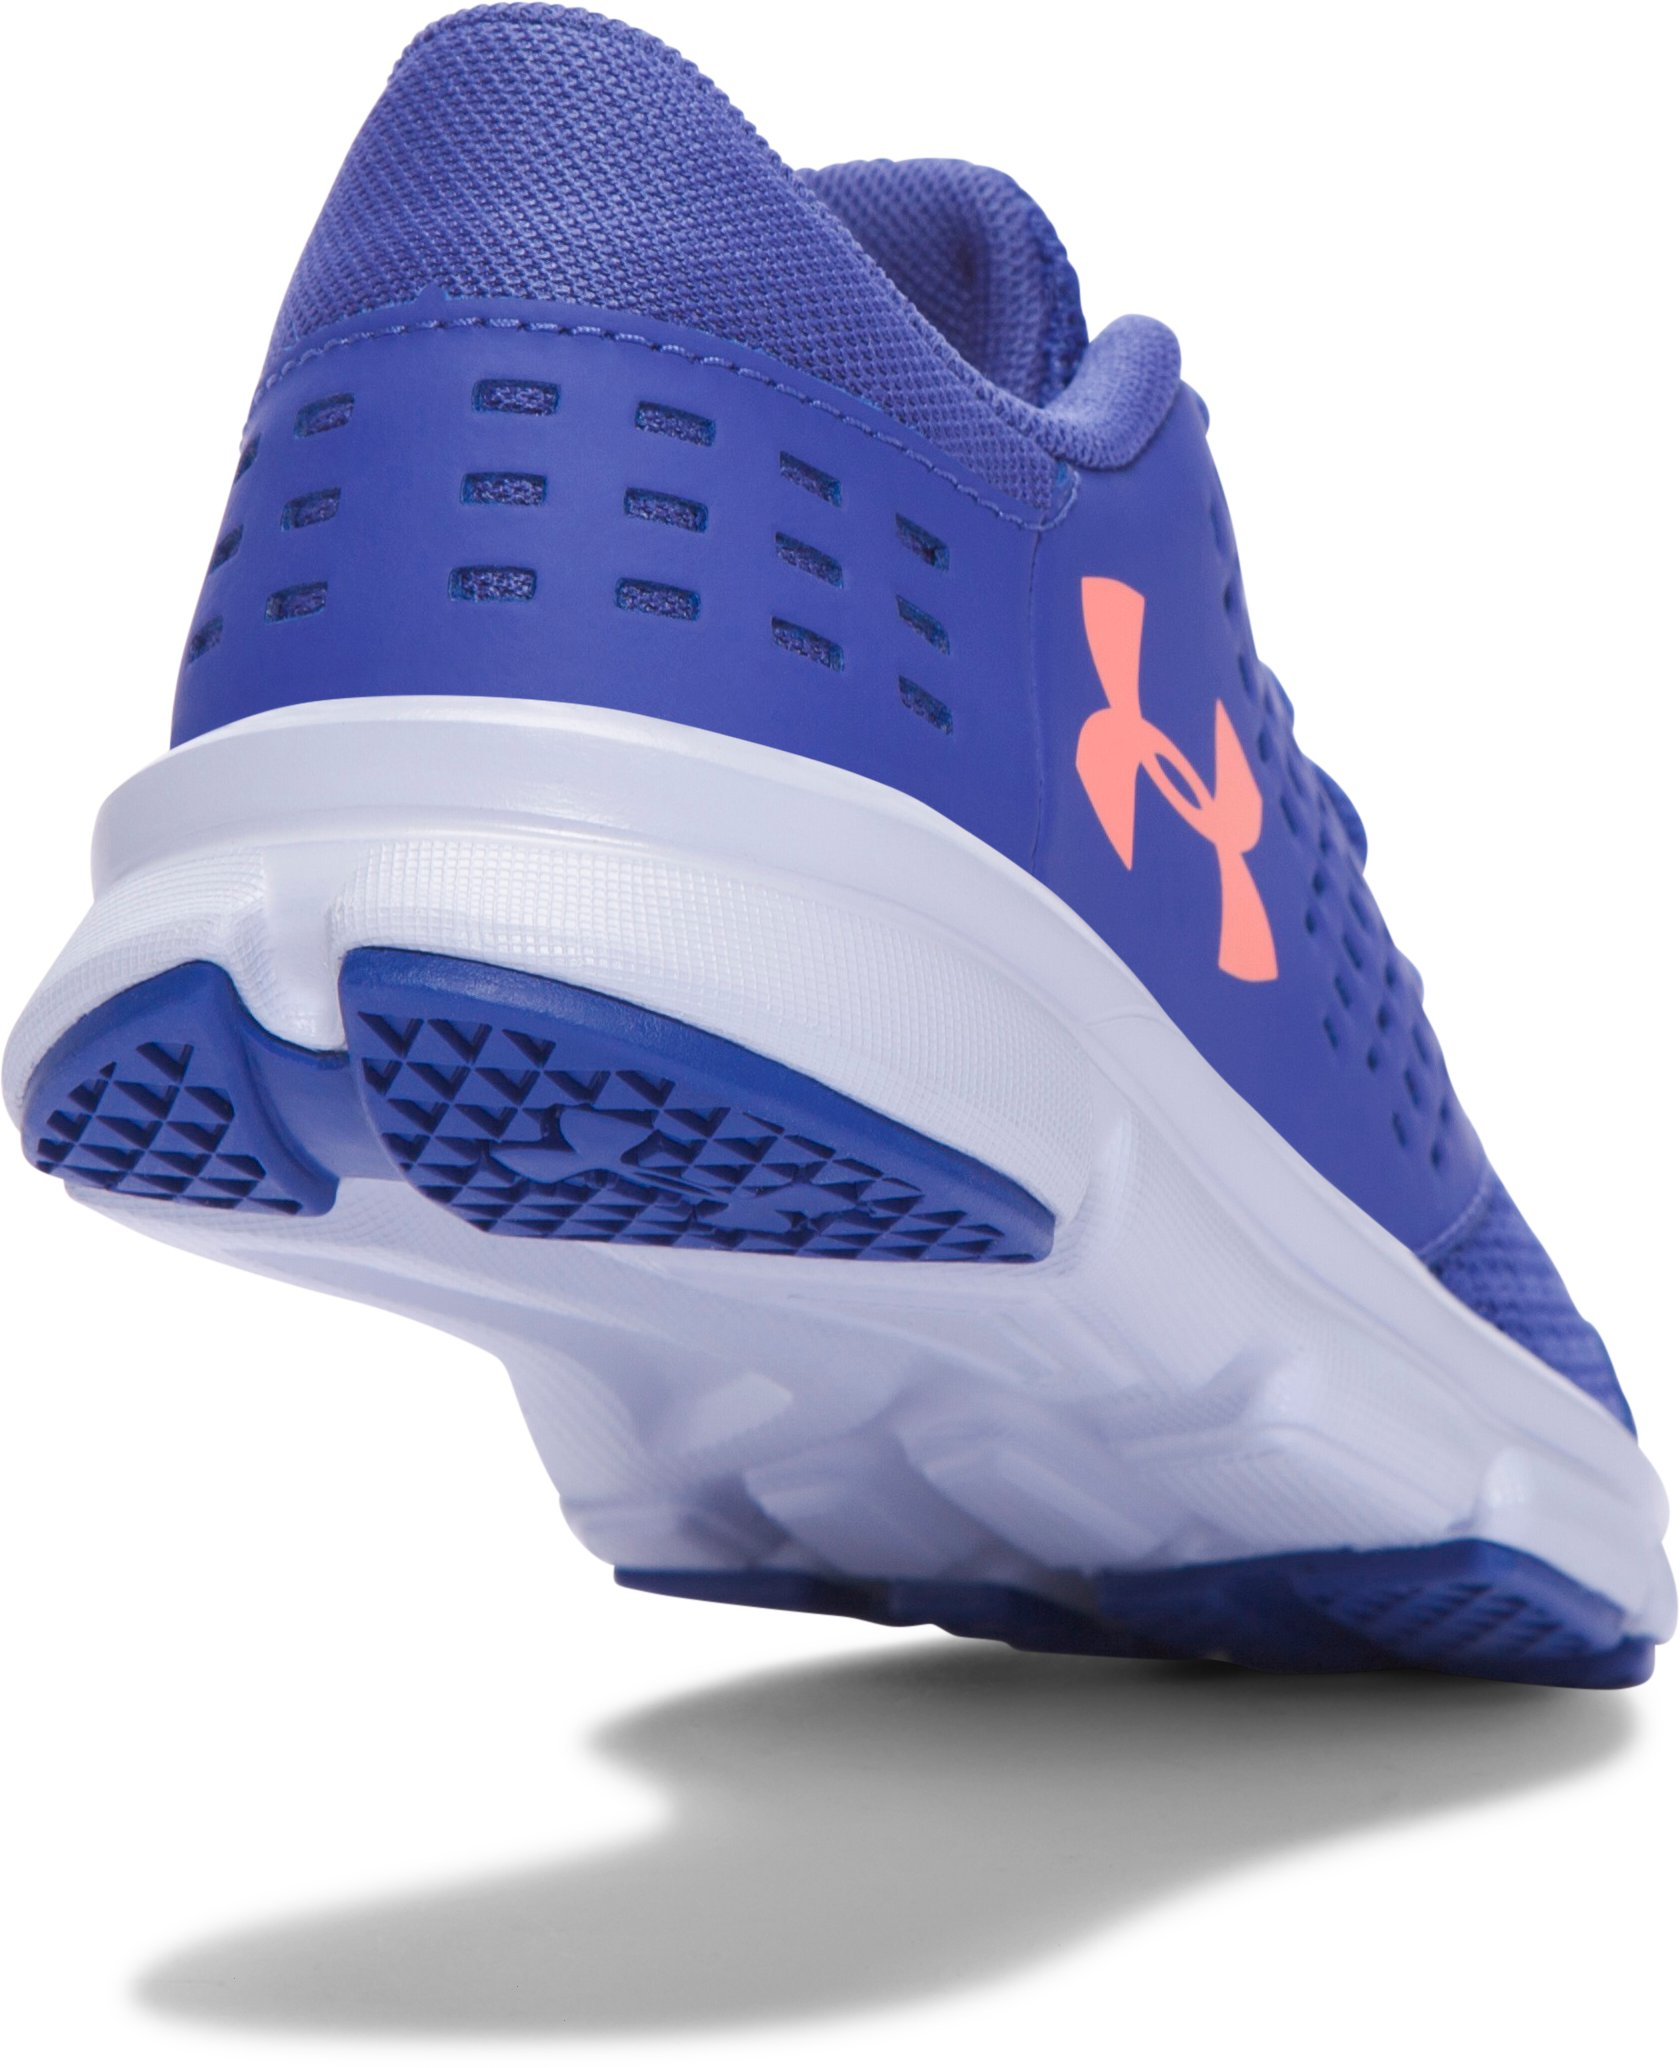 Girls' Pre-School UA Rave Running Shoes, DEEP PERIWINKLE,